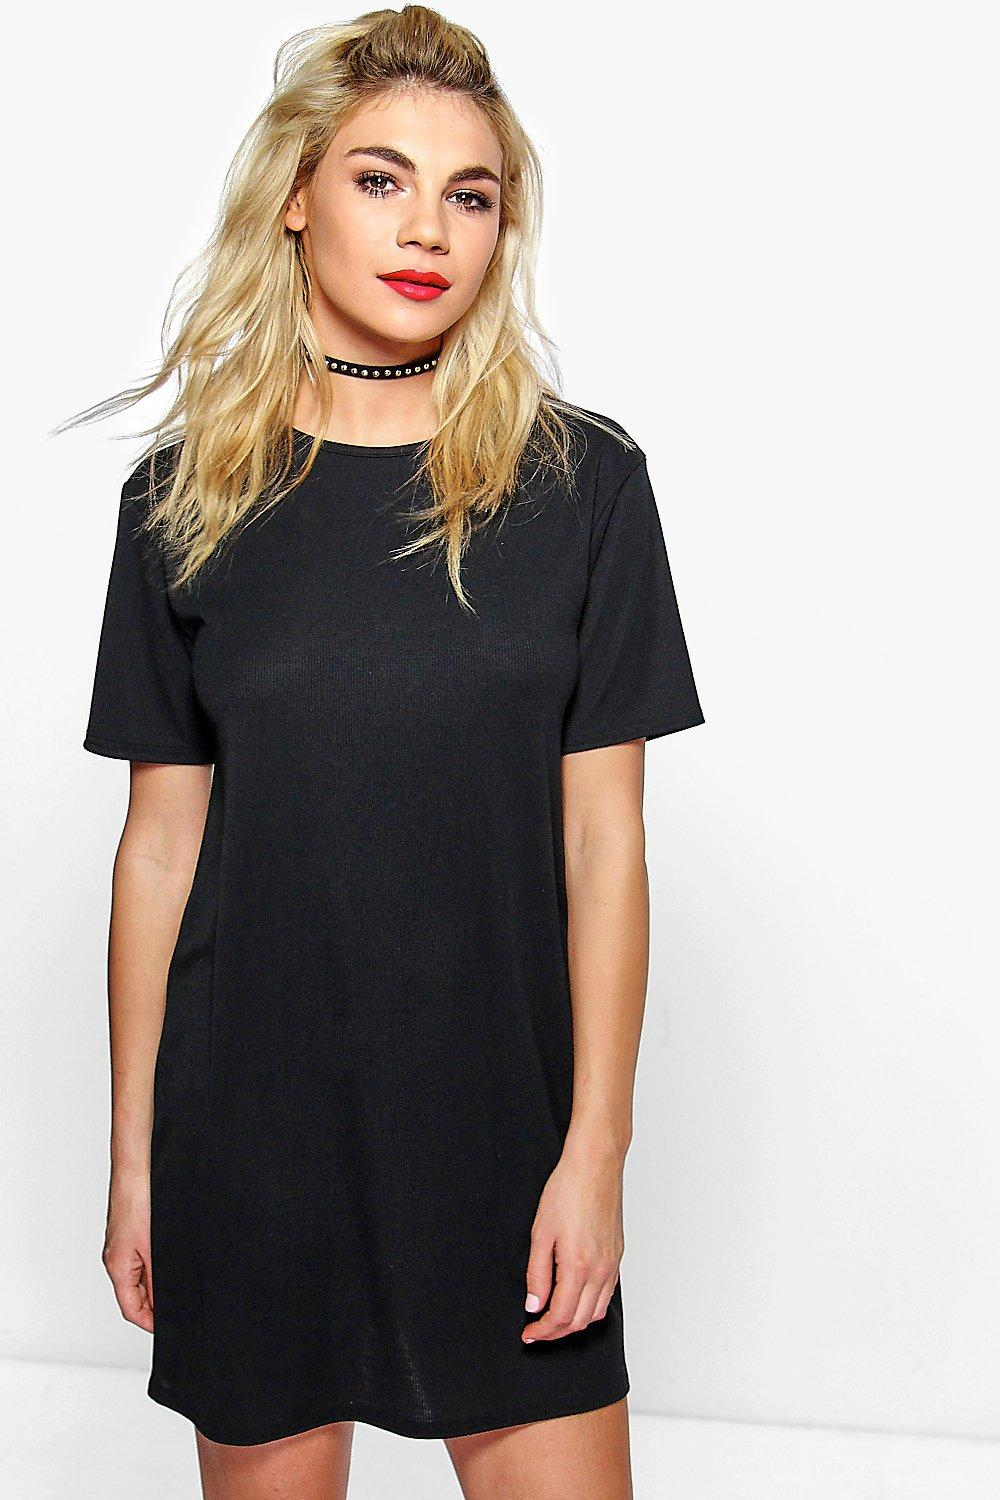 Find tee shirt shift dress at ShopStyle. Shop the latest collection of tee shirt shift dress from the most popular stores - all in one place.